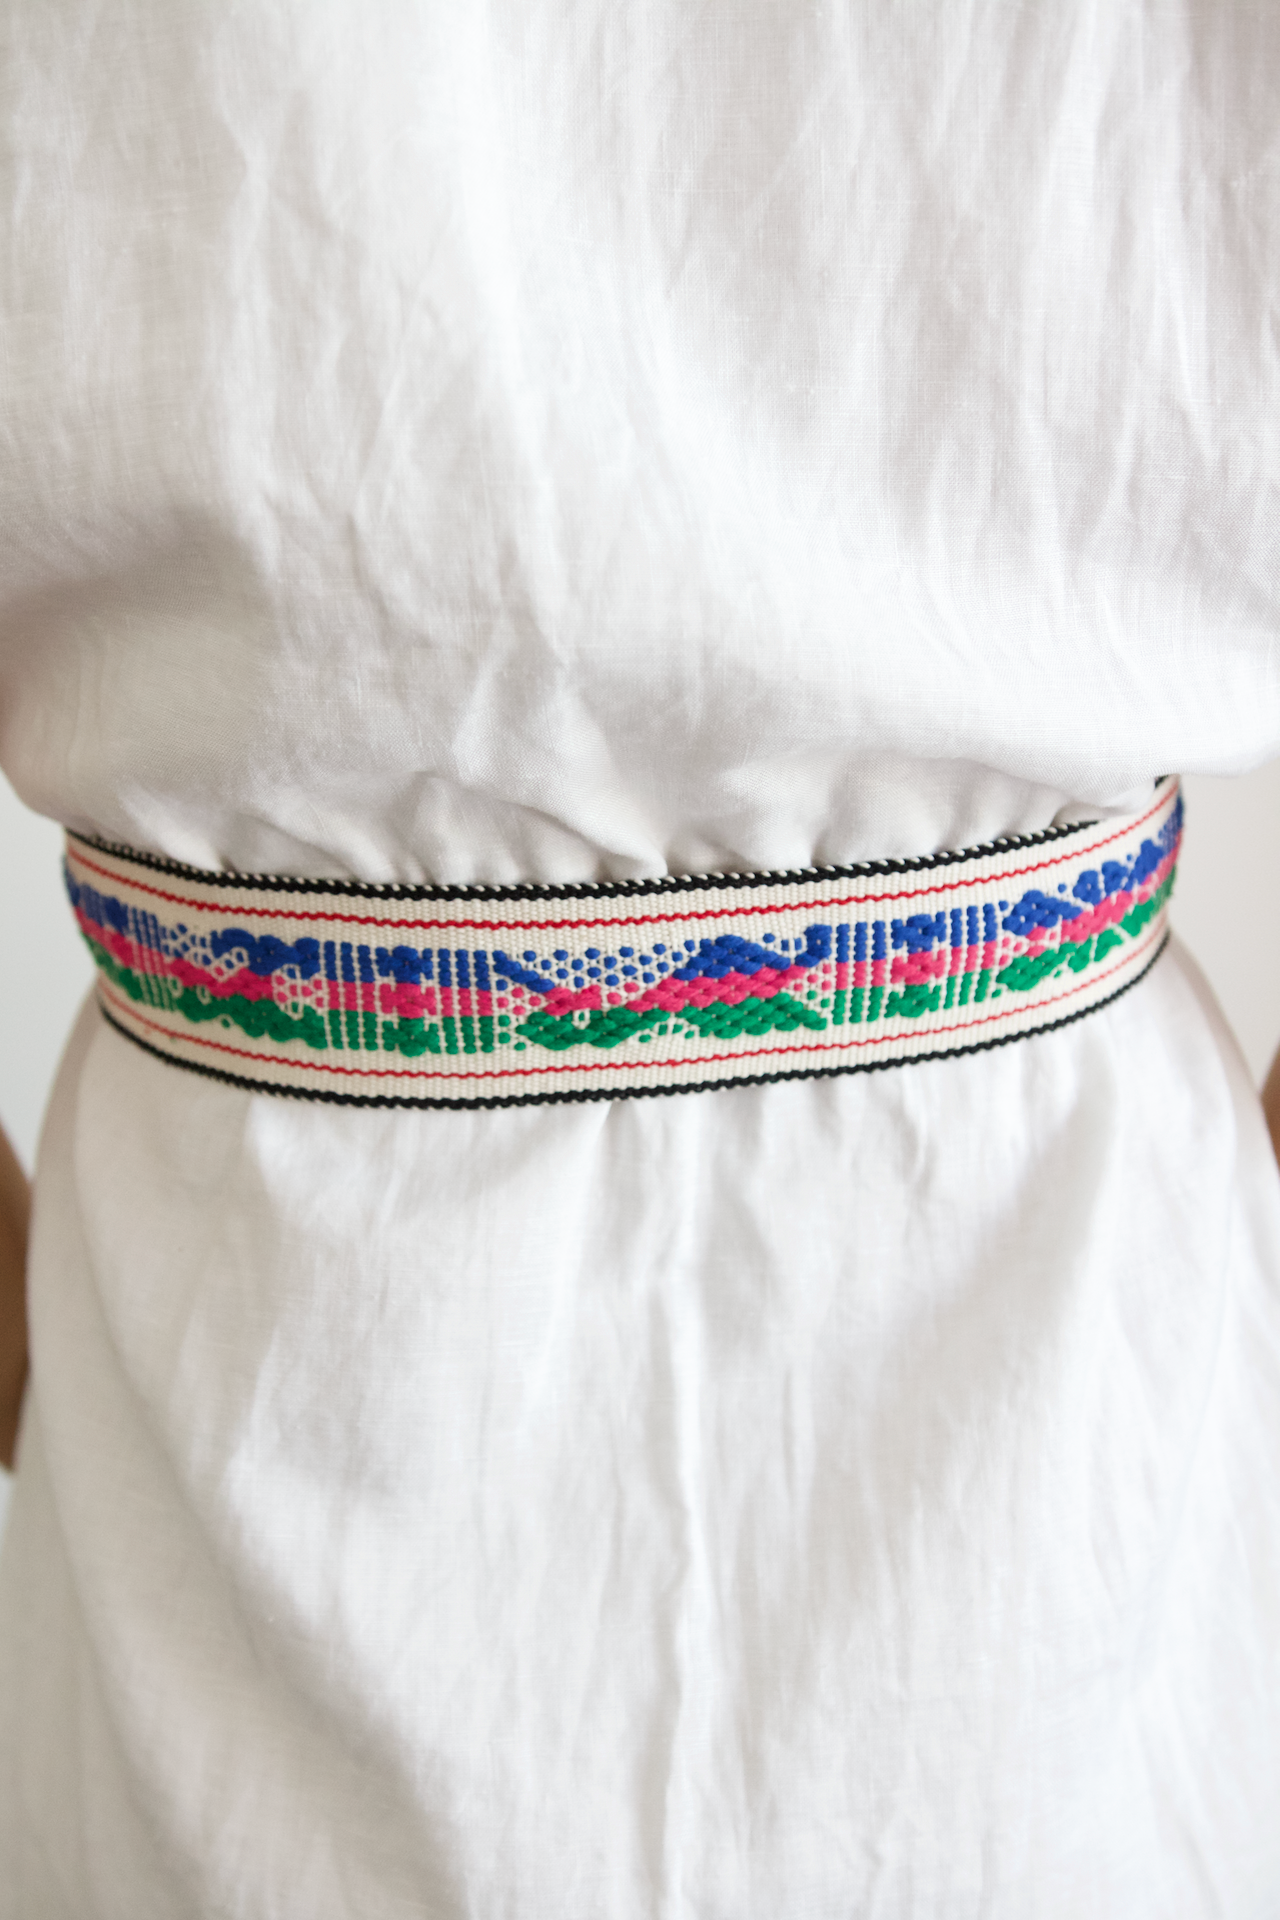 Berta Belt - Green, Blue & Pink